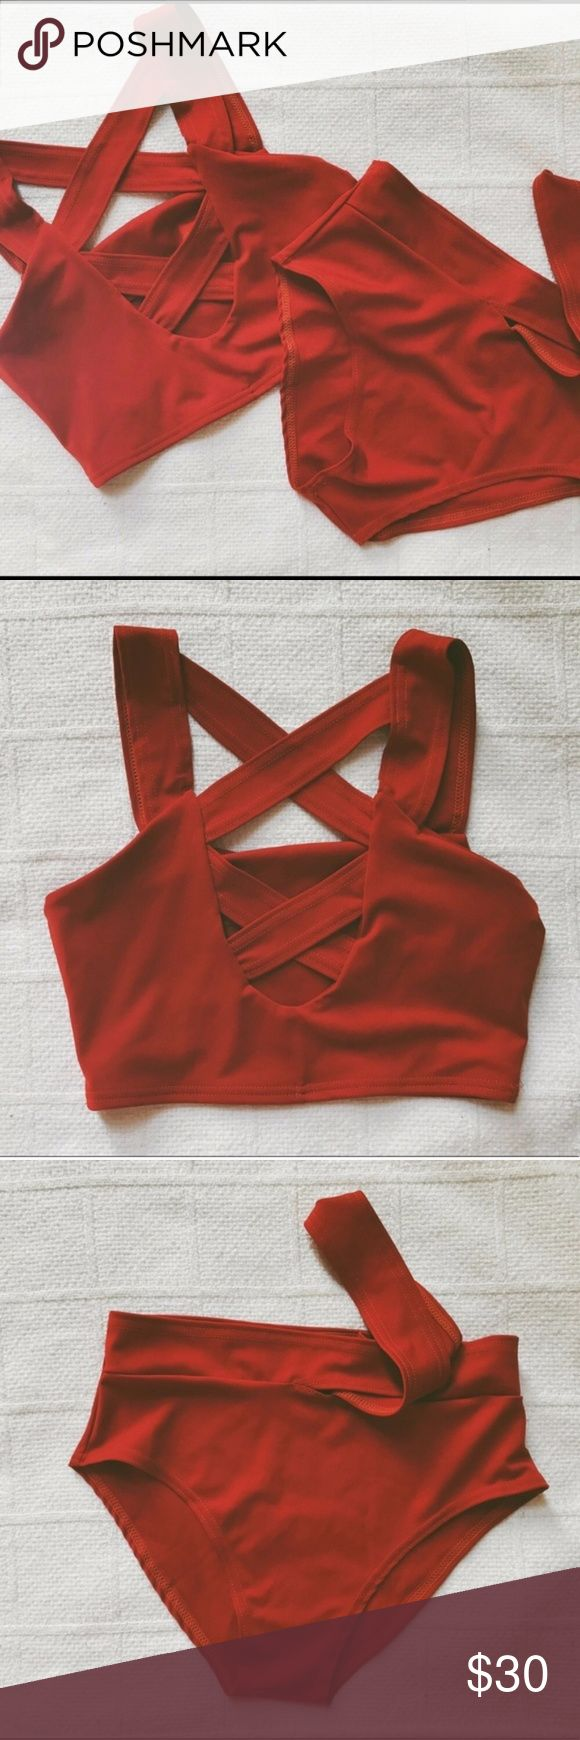 Burnt orange red strappy swimsuit bikini cut out Red orange strappy cut out bikini  Size Small, Fits more like a med Unbranded Great condition High waisted strappy bottoms Last pic shows fit, color is slightly lighter in person  *TAGS- missguided, blue life, stone cold fox, Zaful, asos, nastygal, victorias secret* No brand tag Swim Bikinis